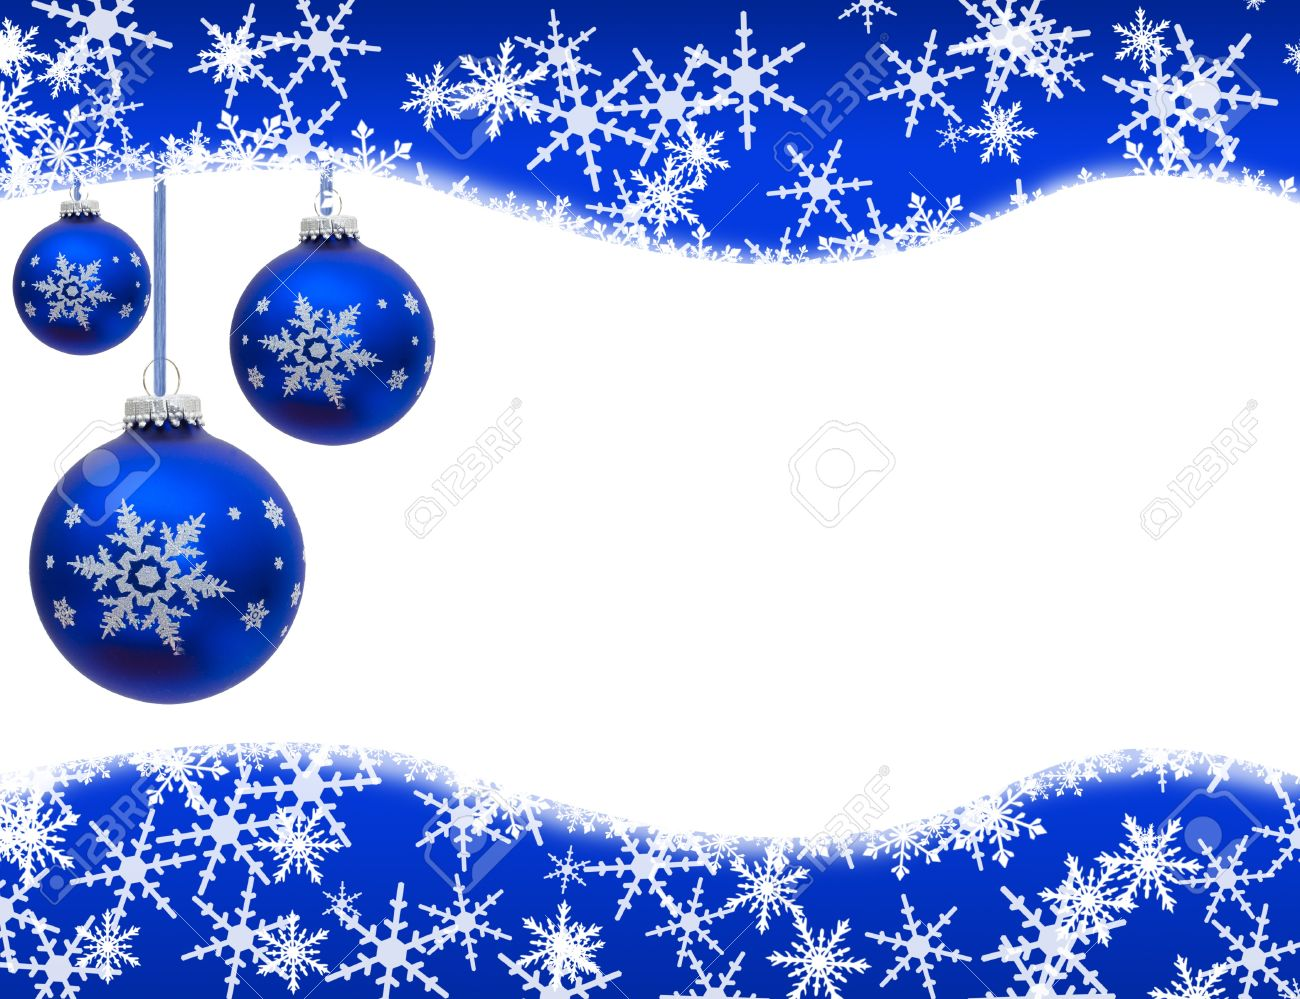 Christmas ornaments and snowflake border isolated on white, Christmas Time Stock Photo - 11272747